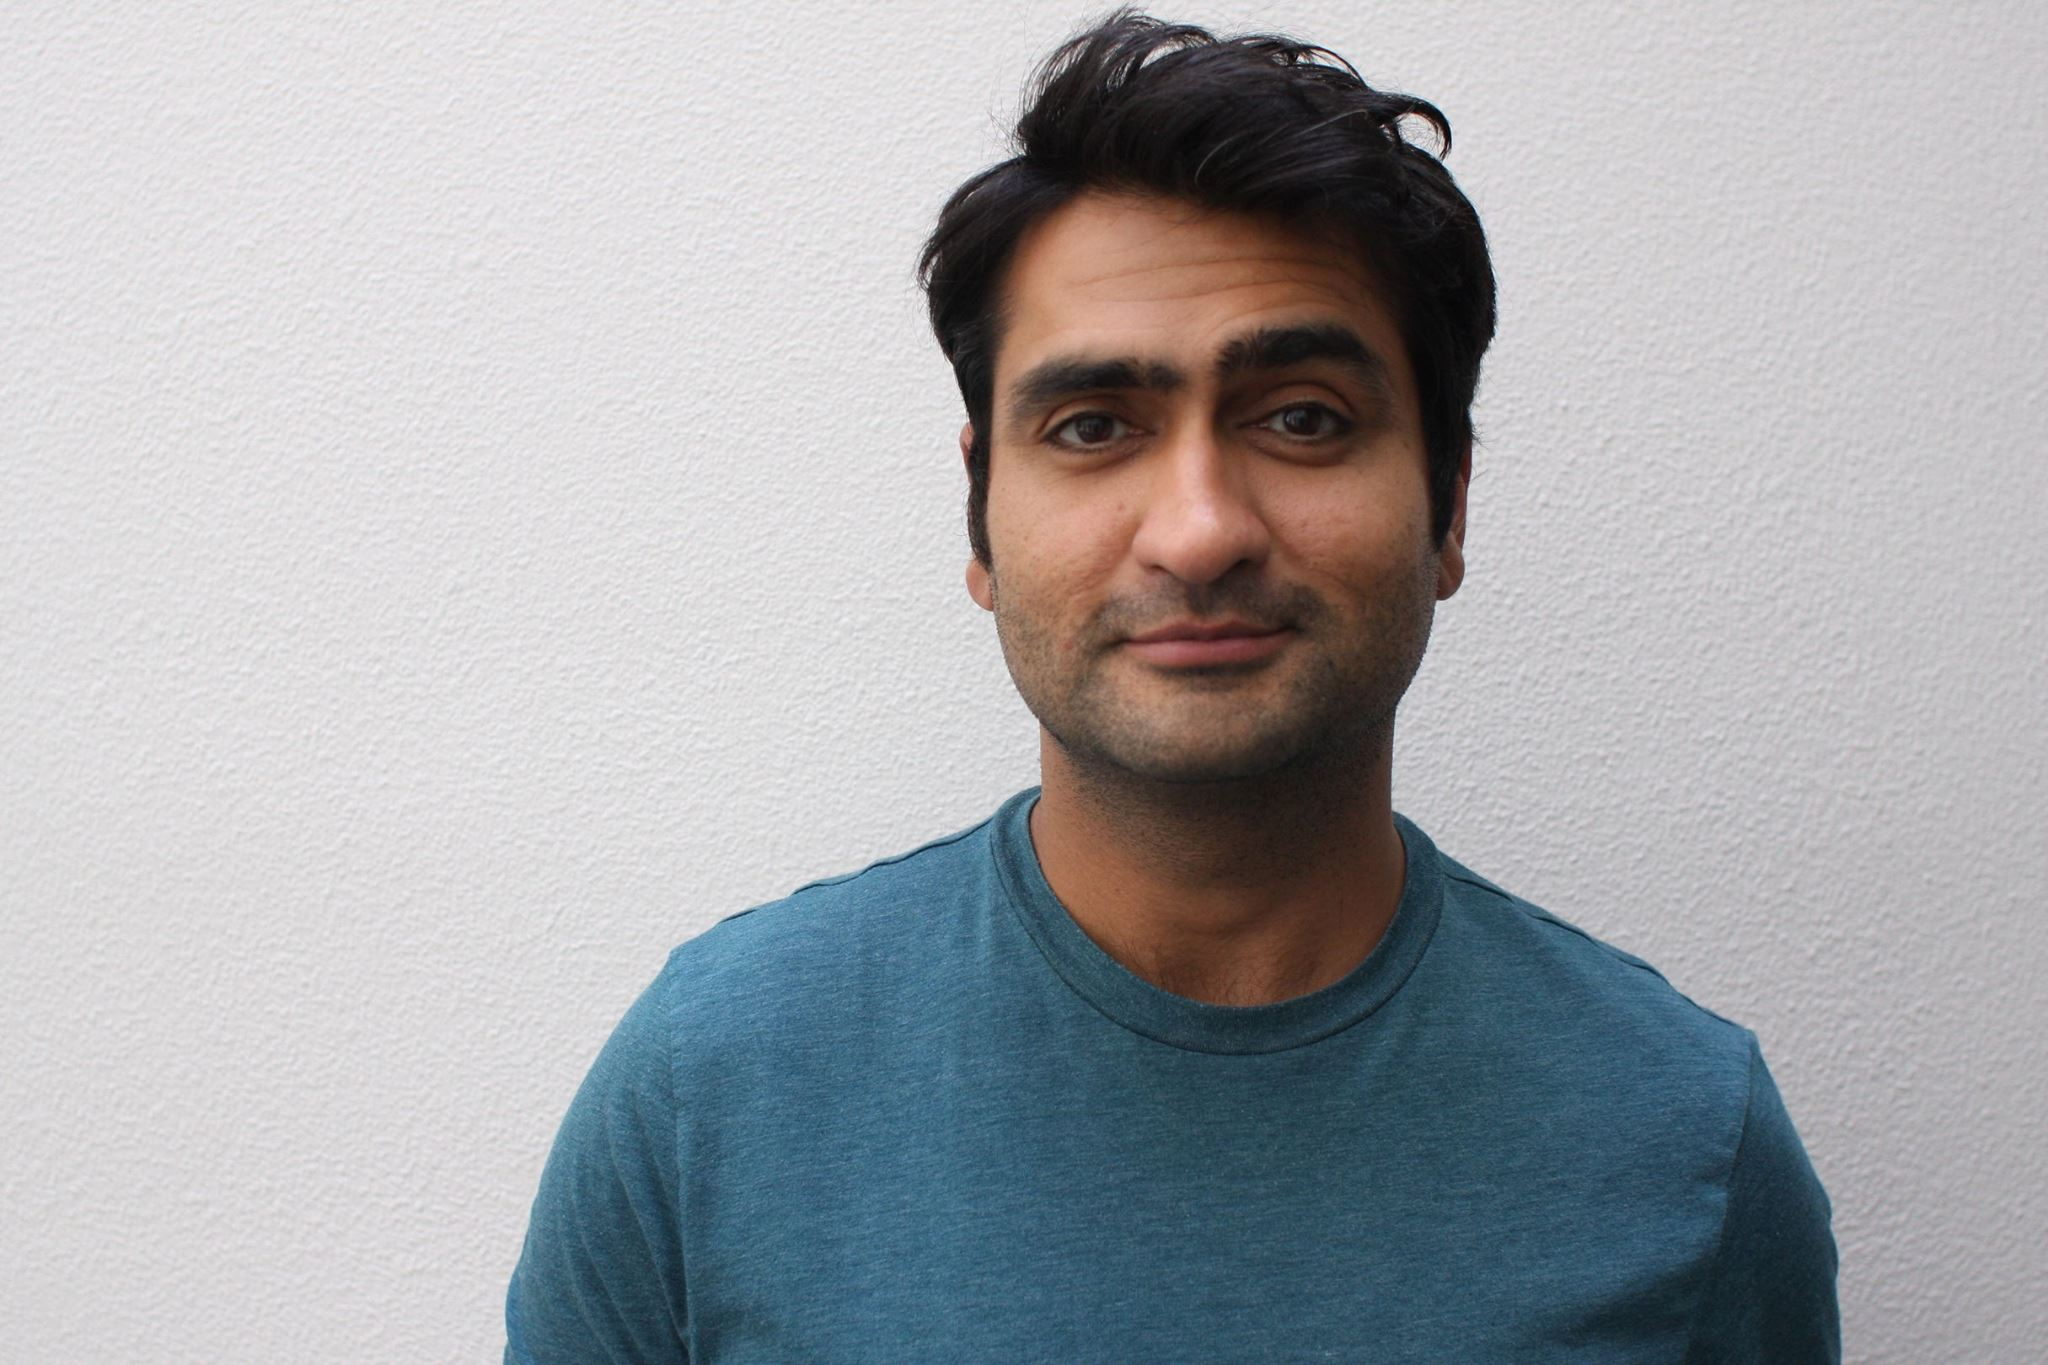 kumail nanjiani instagramkumail nanjiani instagram, kumail nanjiani wife, kumail nanjiani walking dead, kumail nanjiani titanfall, kumail nanjiani voice acting, kumail nanjiani and emily v. gordon, kumail nanjiani mass effect, kumail nanjiani twitter, kumail nanjiani stand up, kumail nanjiani wedding, kumail nanjiani imdb, kumail nanjiani, kumail nanjiani podcast, kumail nanjiani x files, kumail nanjiani portlandia, kumail nanjiani net worth, kumail nanjiani emily gordon, kumail nanjiani adventure time, kumail nanjiani conan, kumail nanjiani john mayer